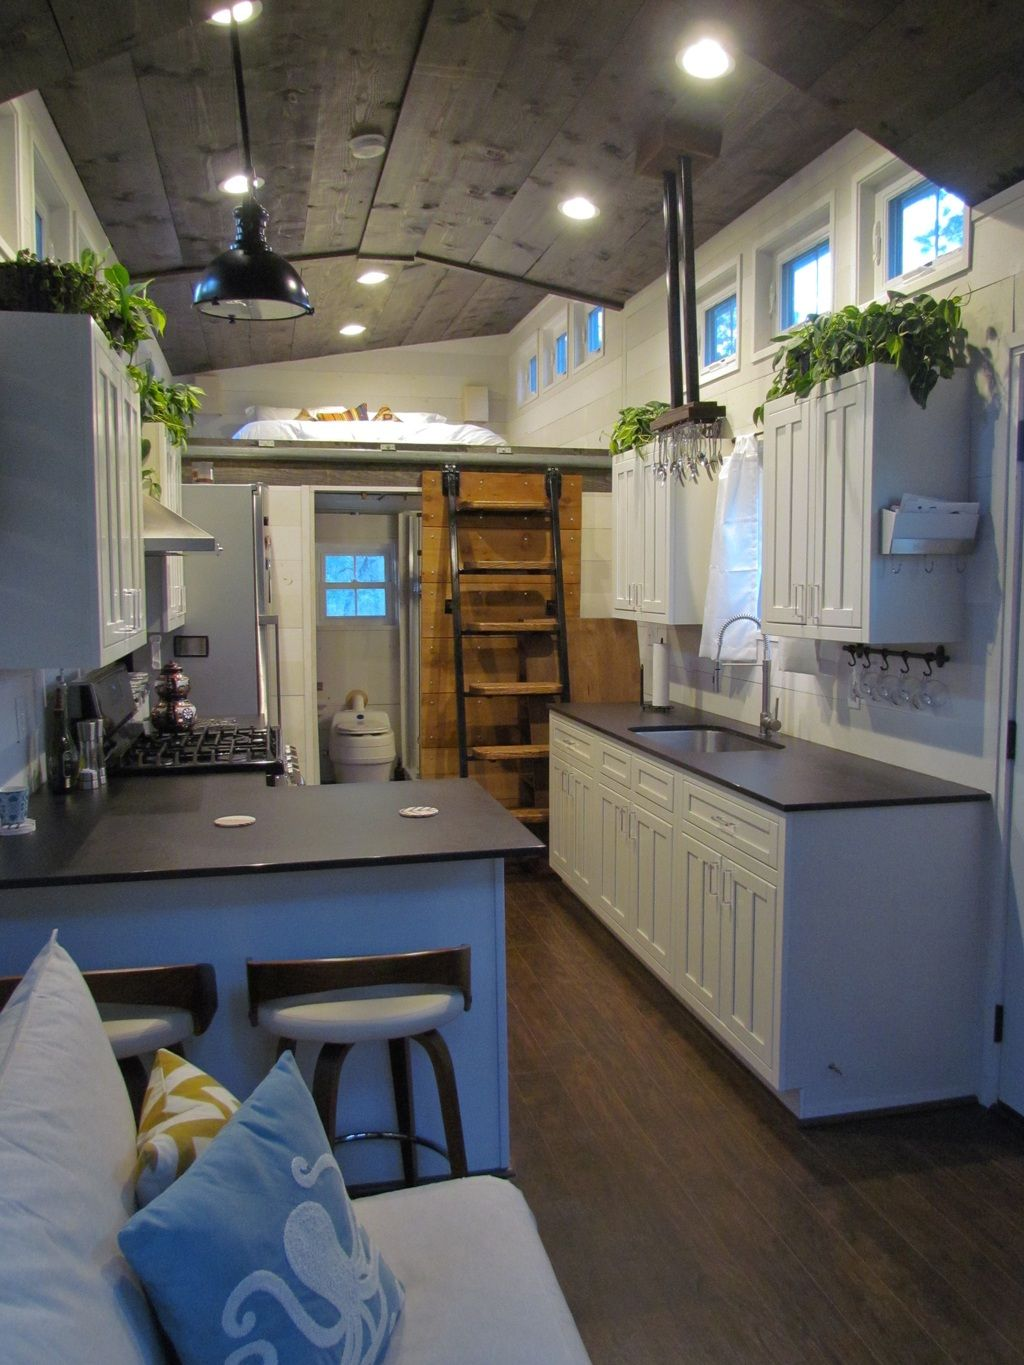 La Casita - Tiny House for Sale in Austin, Texas - Tiny House Listings #tinyhomes